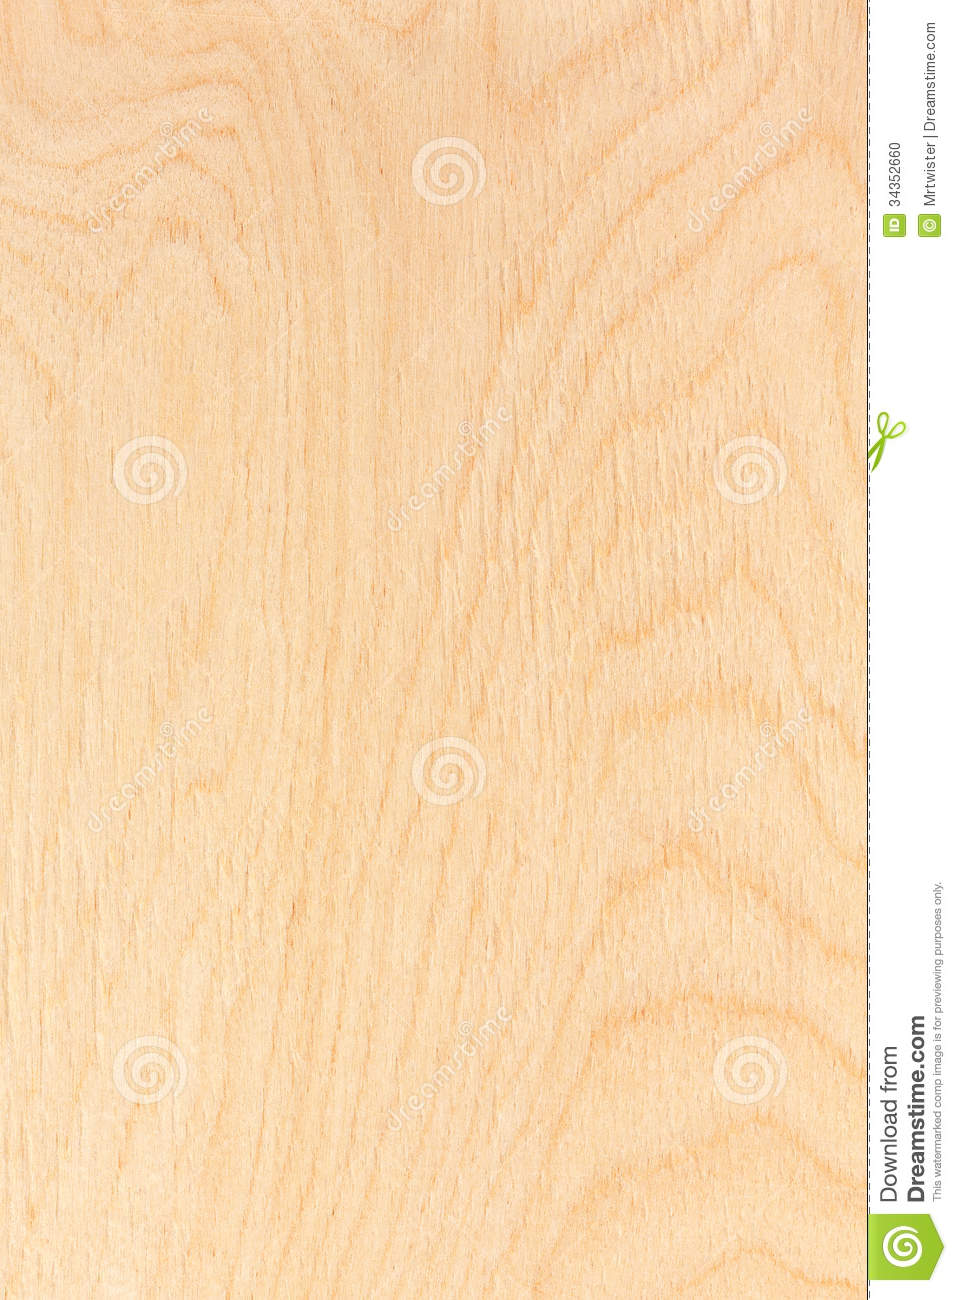 Birch Plywood Texture Stock Photo Image Of Plywood Blank